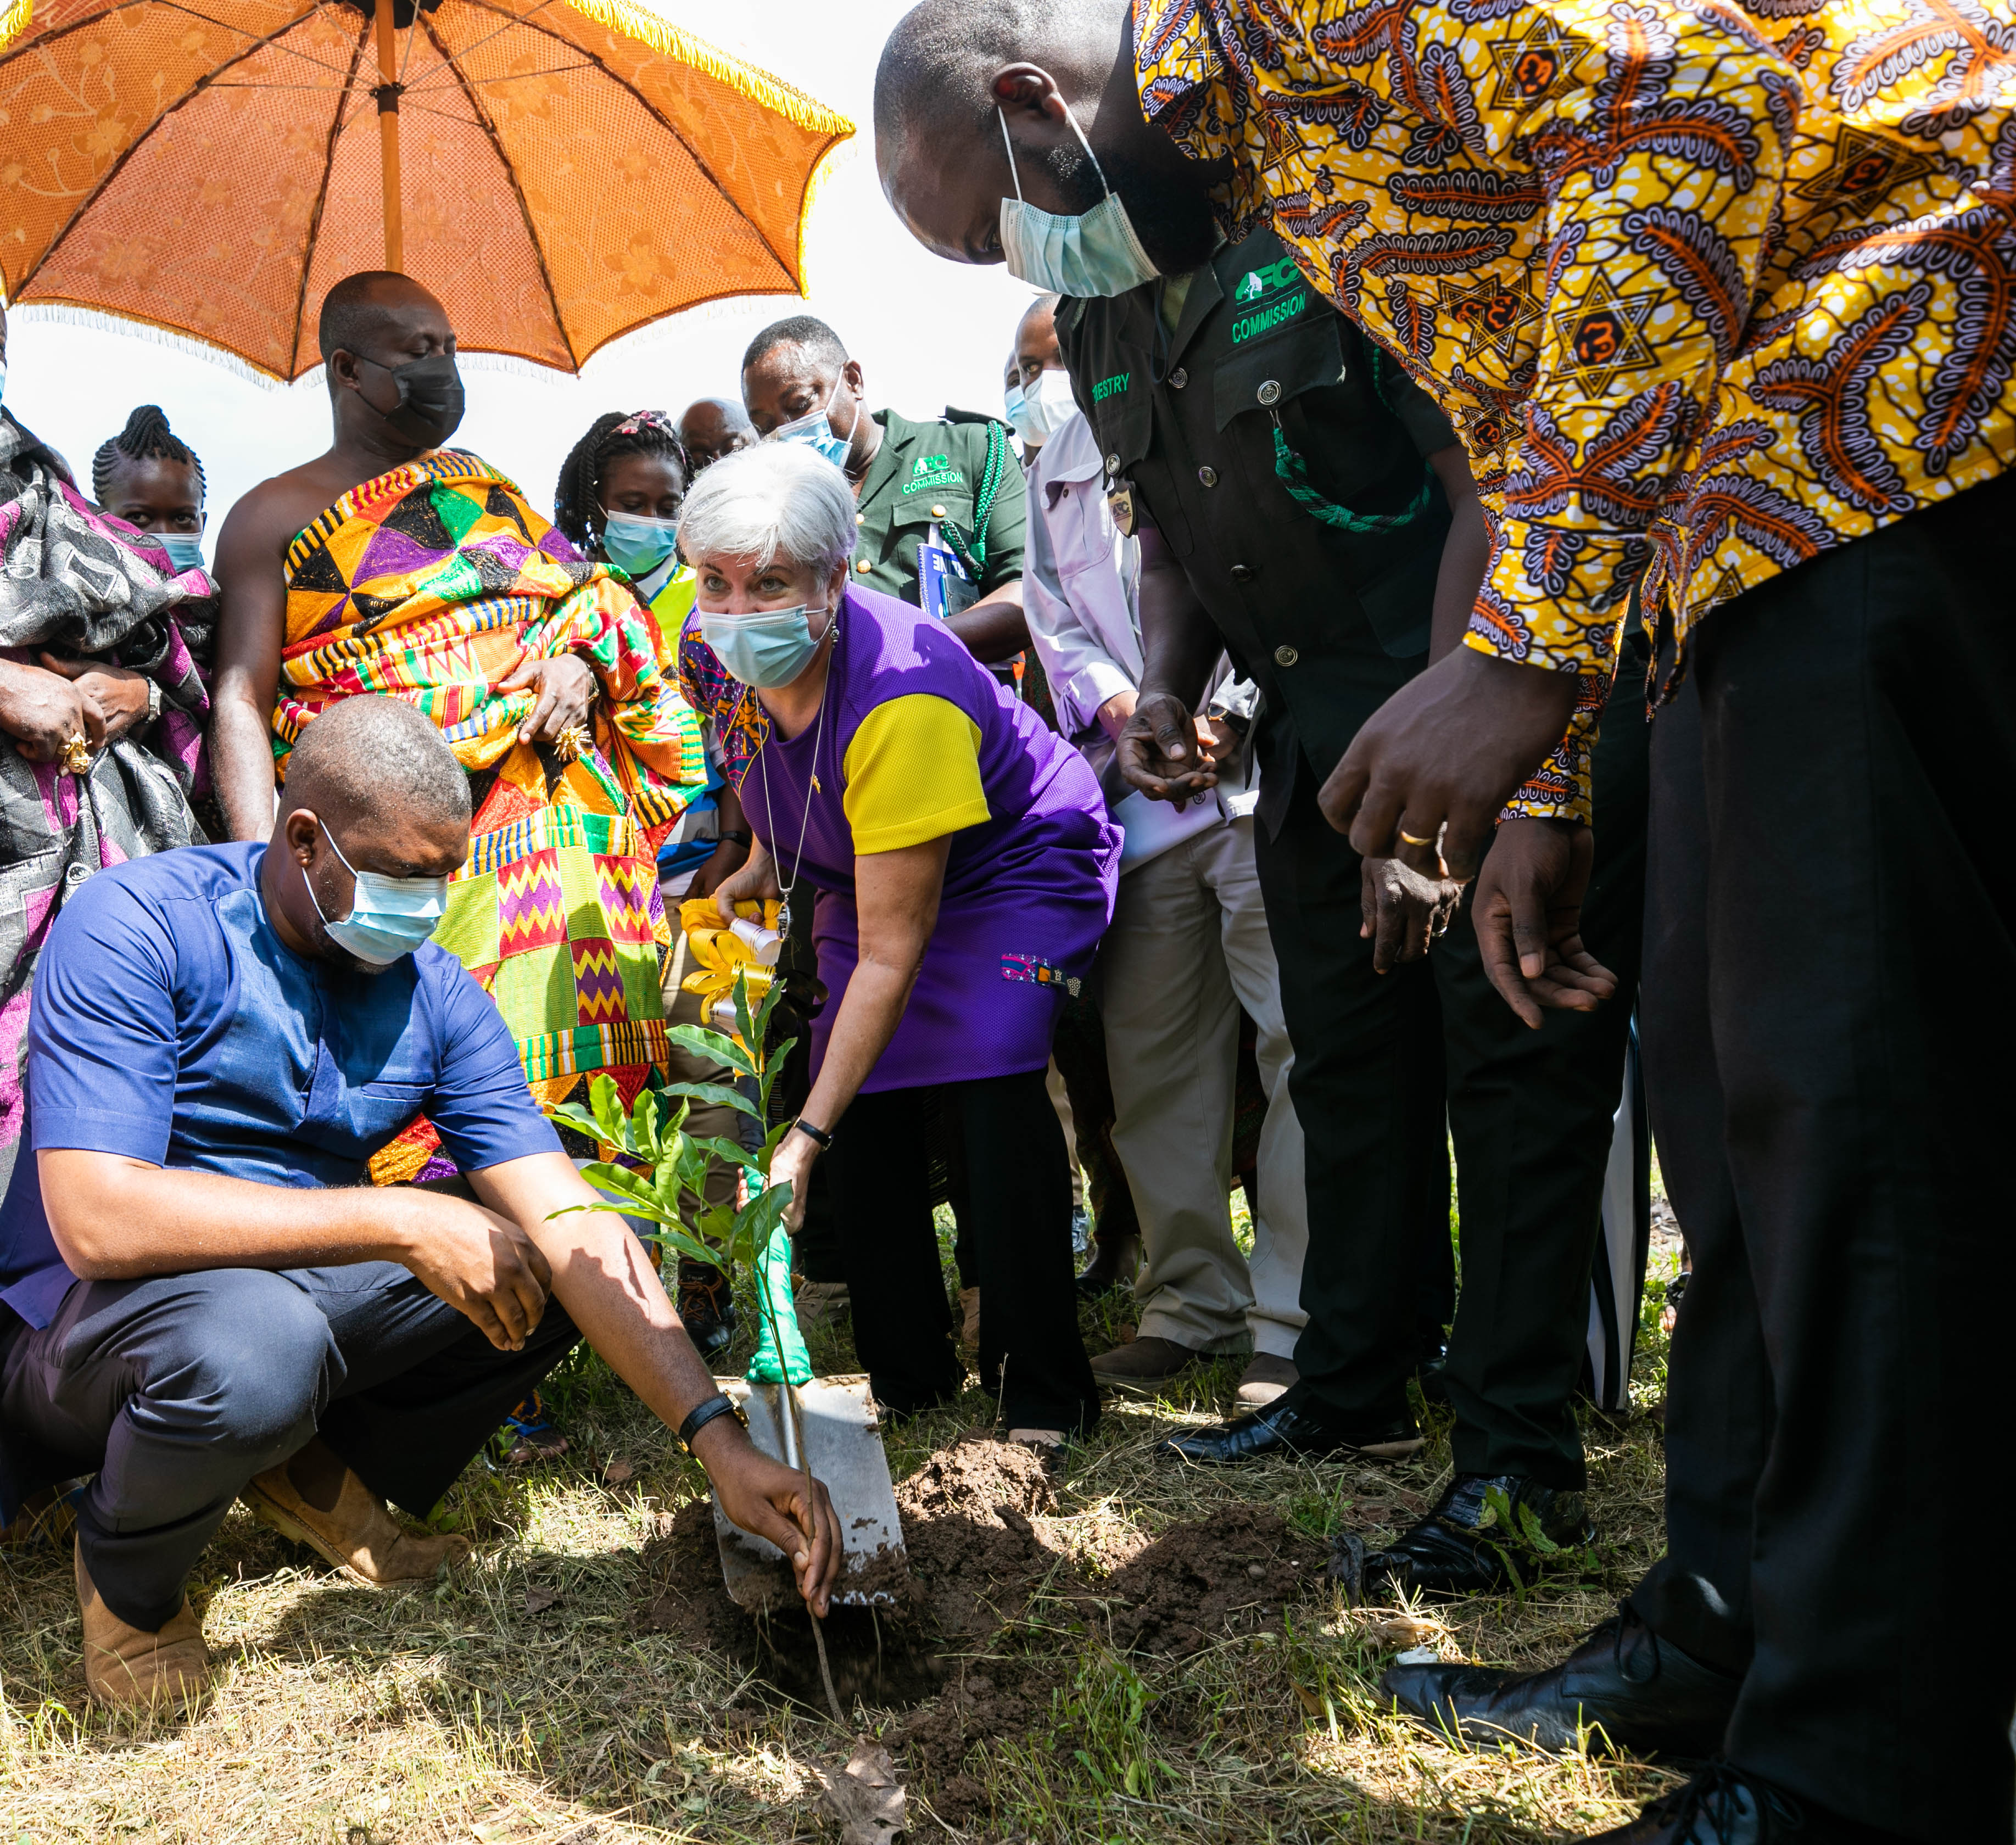 U.S. Ambassador to Ghana Stephanie S. Sullivan planting a tree in commemoration of Earth Day on April 22.